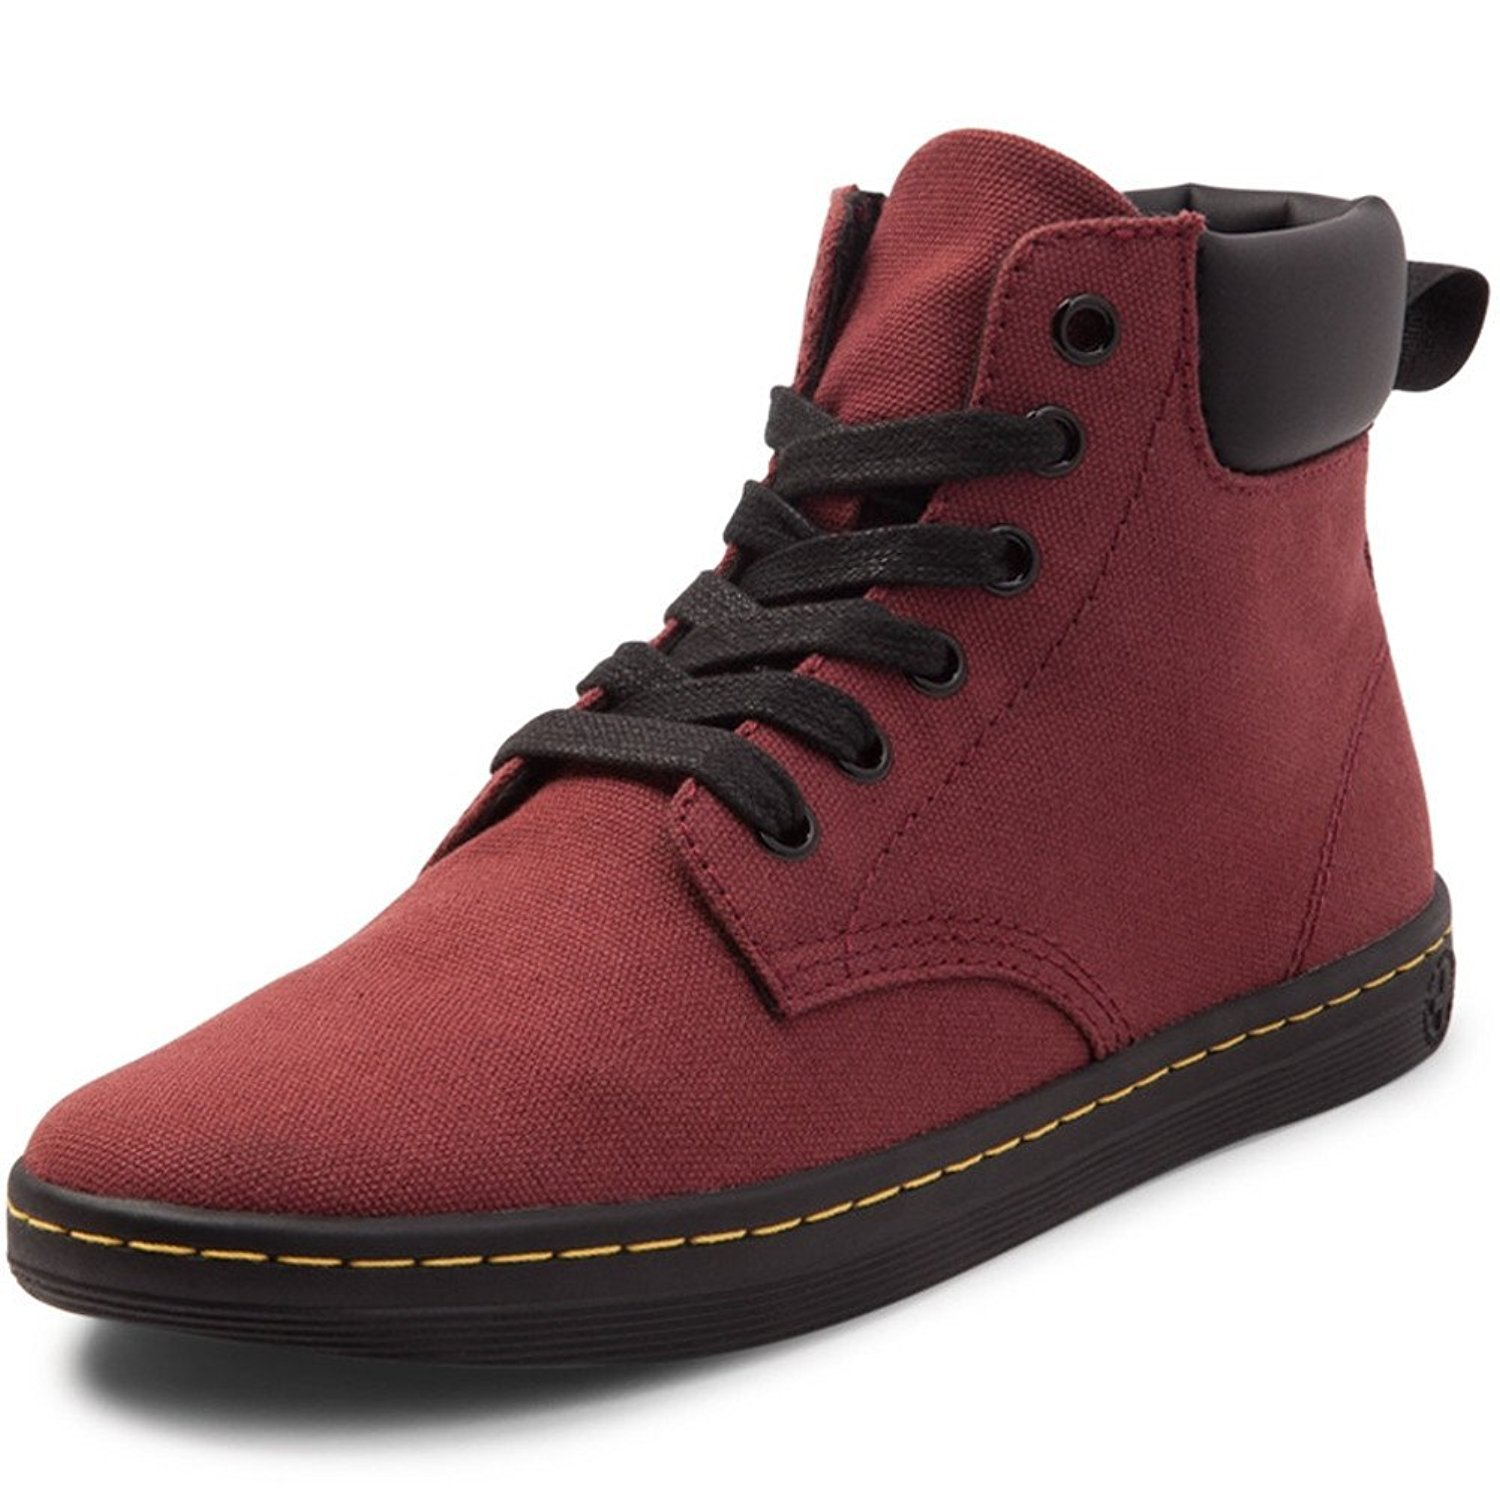 Dr. Martens Women's Maelly Fashion Boot B07BDWNP34 7 Medium UK (9 US)|Cherry Red